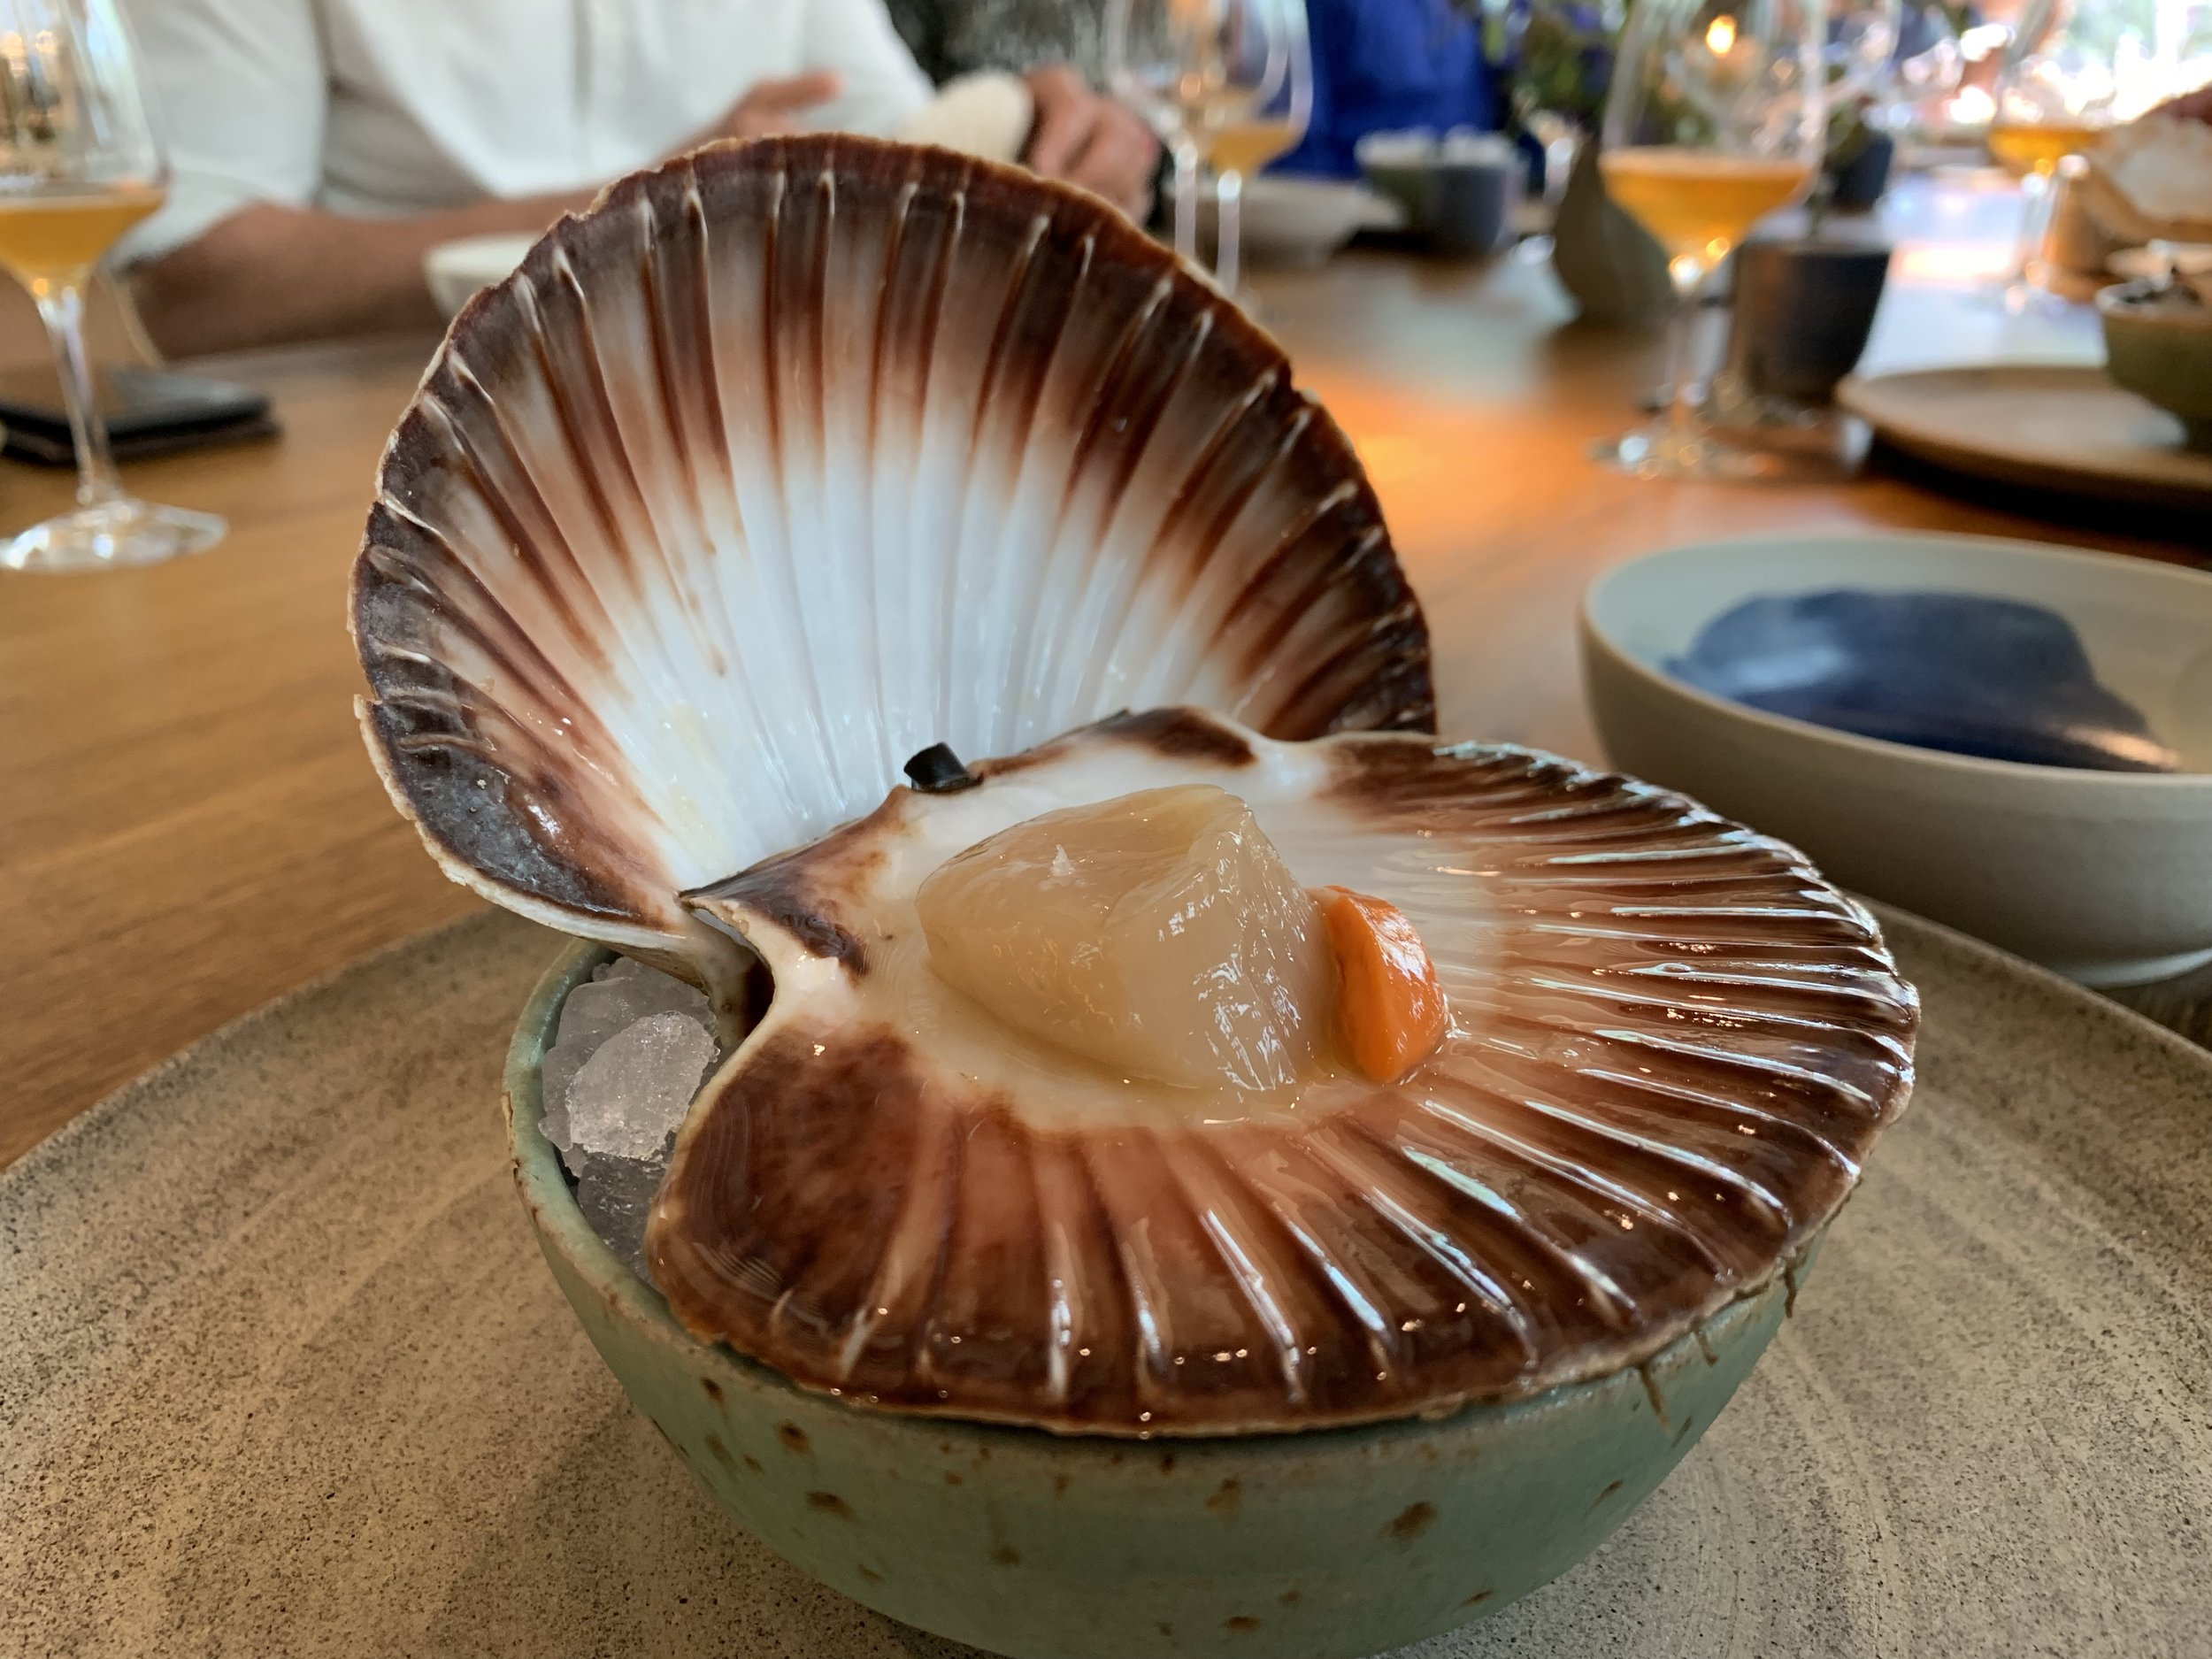 Fresh Norwegian Scallop - As you walk in, you can see the chefs opening the scallops to keep them as fresh as possible. They were delivered to our table and we were instructed to use the top part of the shell as a fork to scrap off the scallop and eat it with its roe.